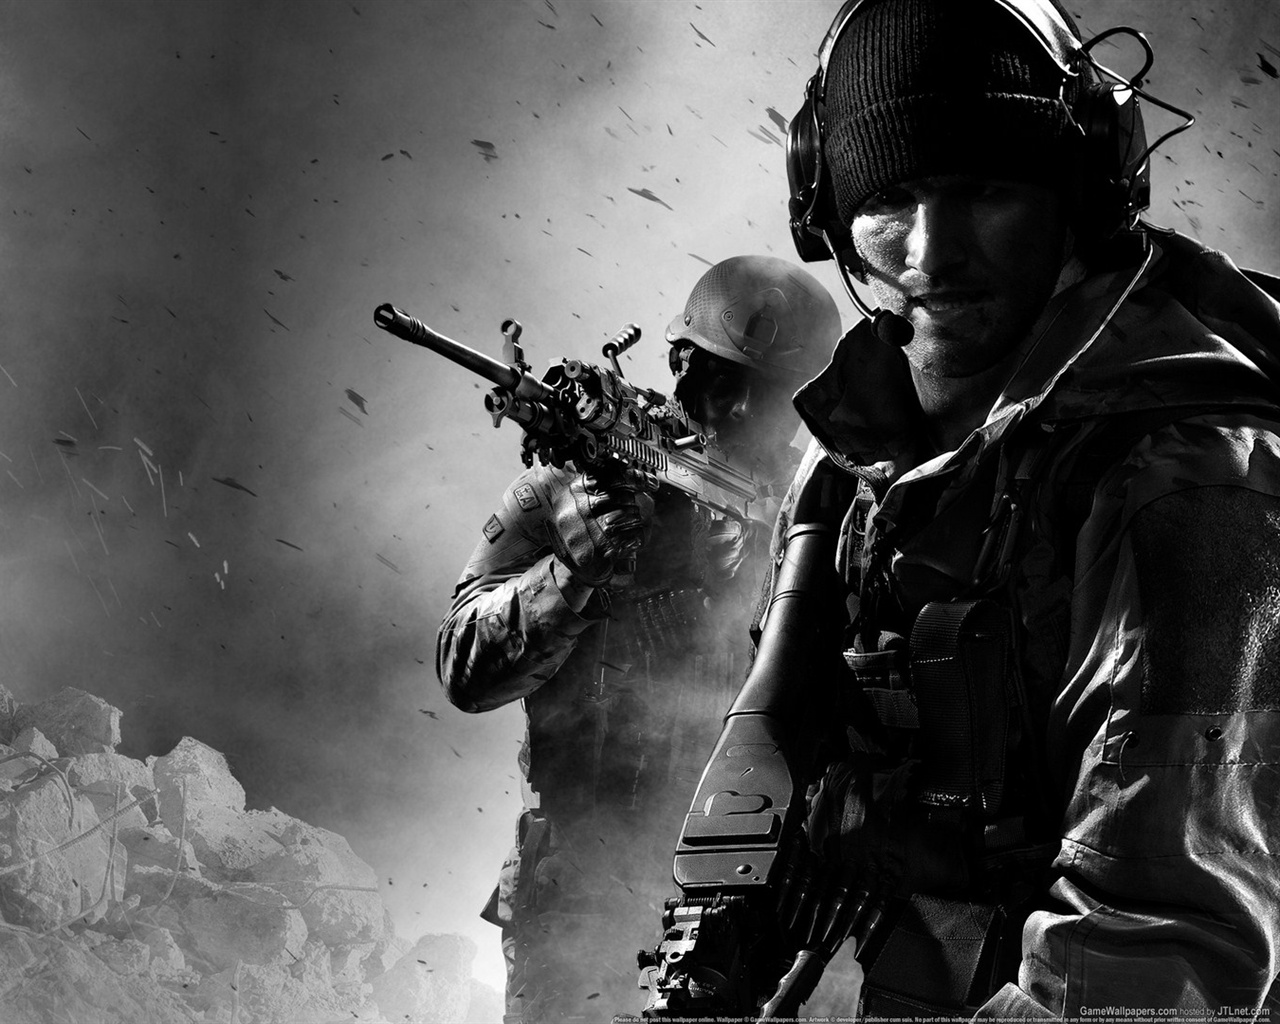 Fondos De Pantalla Call Of Duty Modern Warfare 3 Hd 2012